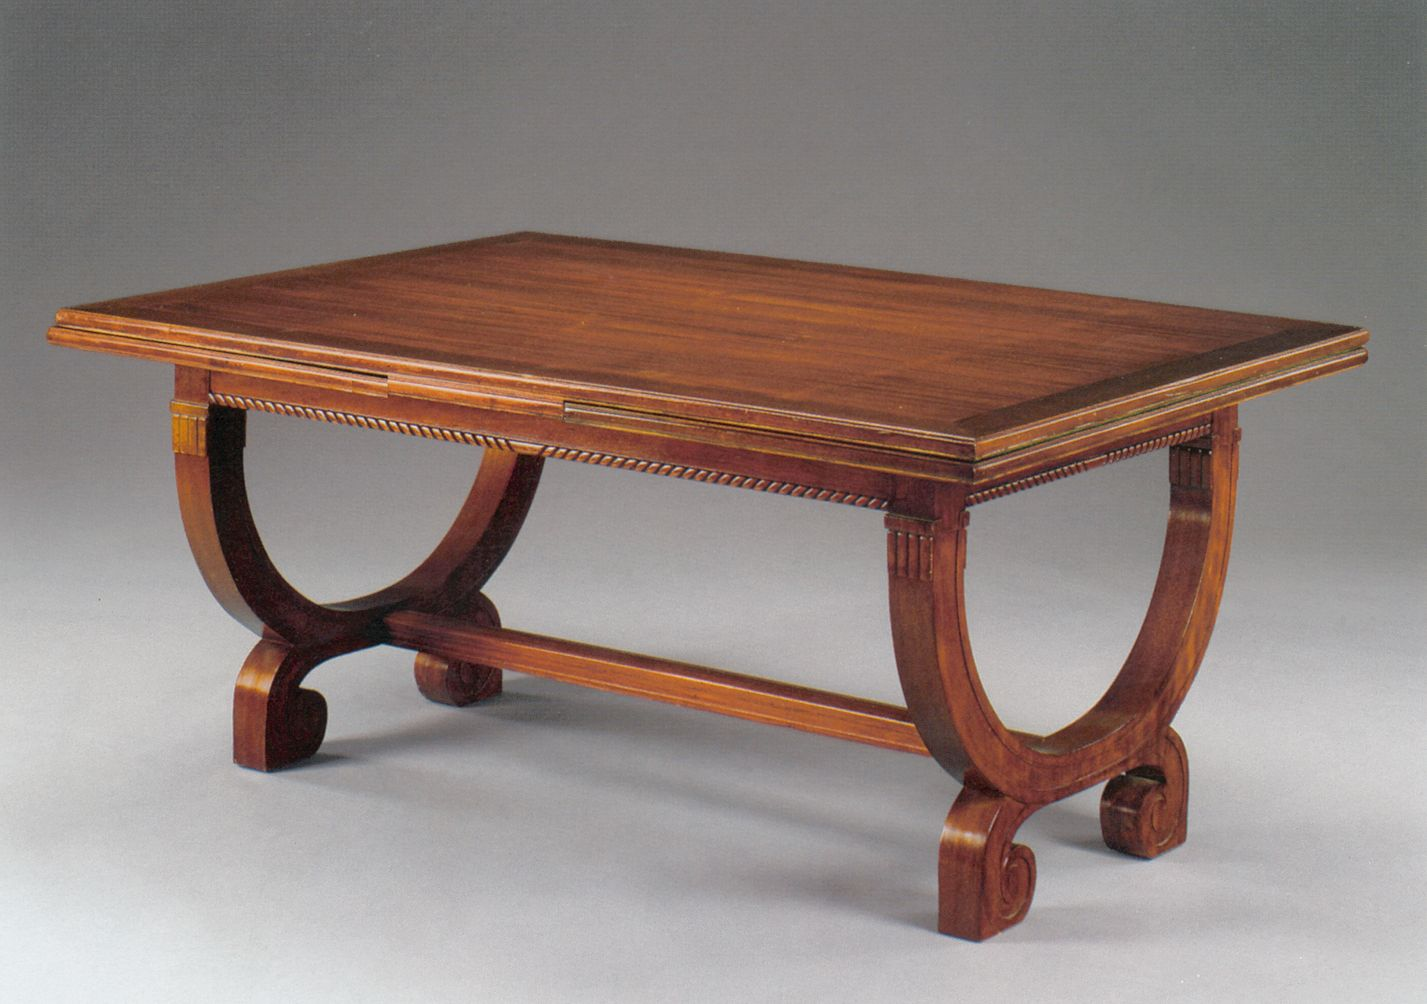 234 mahogany dining table by se mare for compagnie des arts francais 1920s for sale at pamono - Mahogany Dining Table